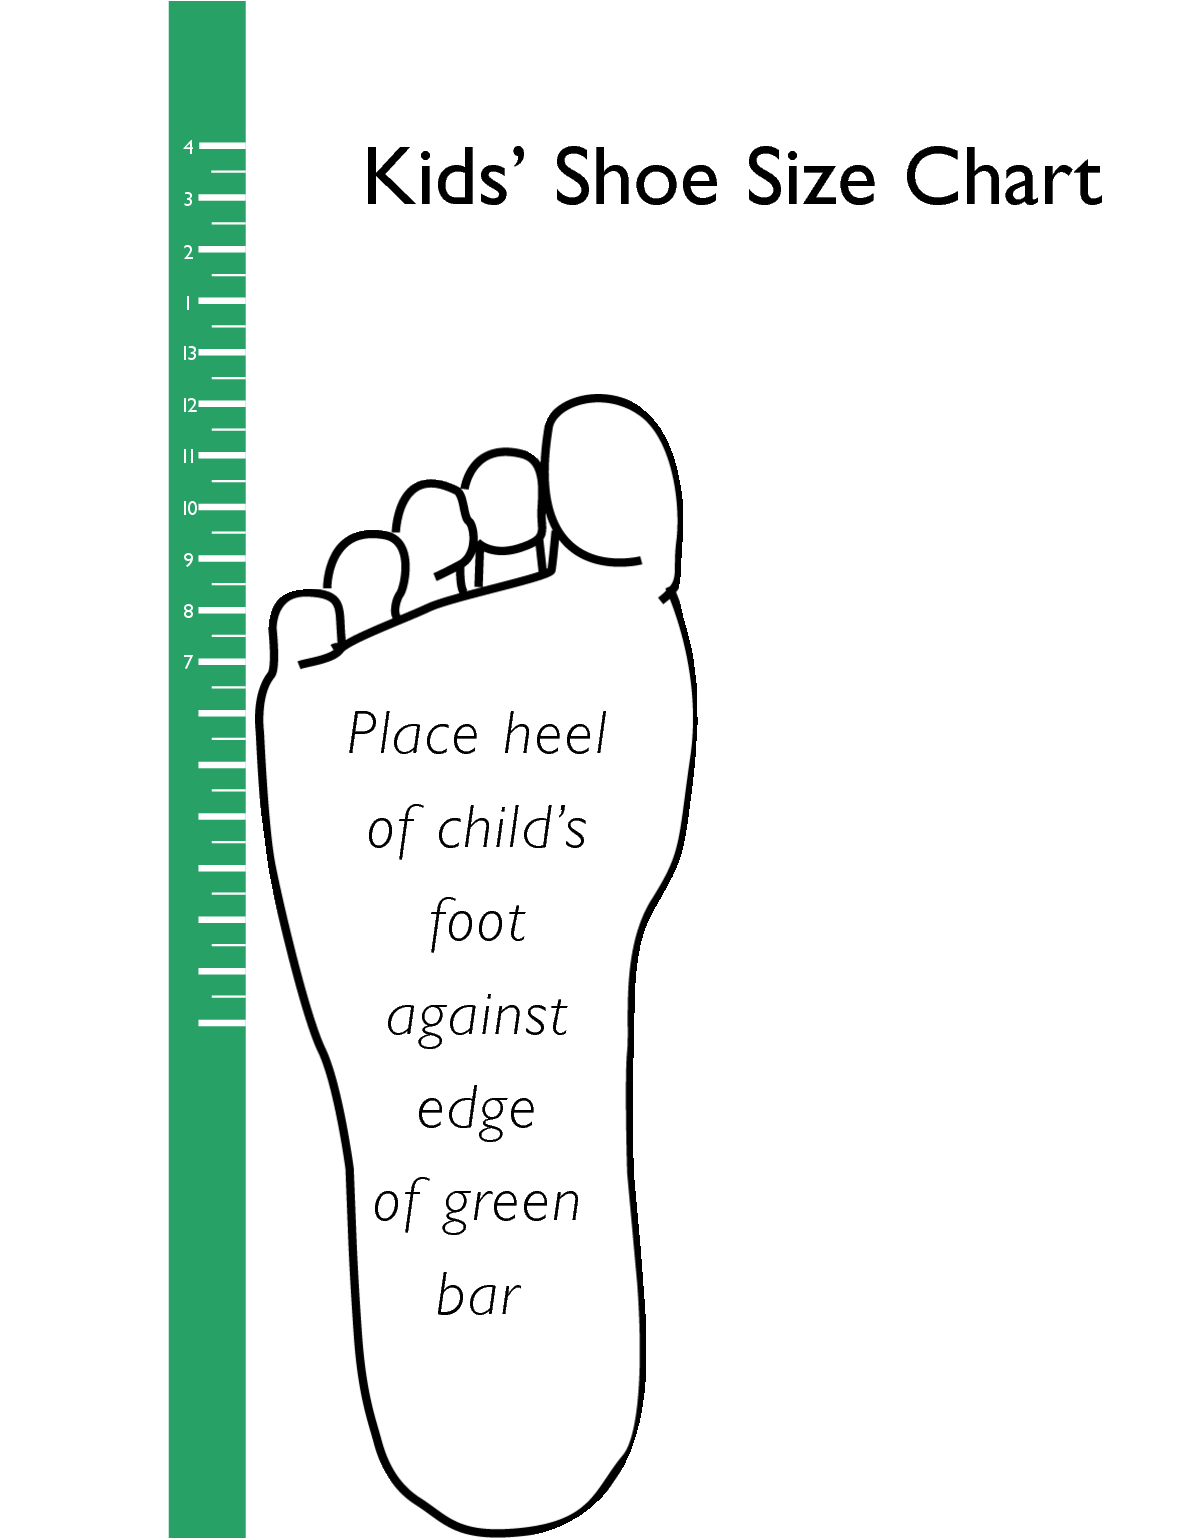 Genial Printable Kids Shoe Size Chart | Scope Of Work Template